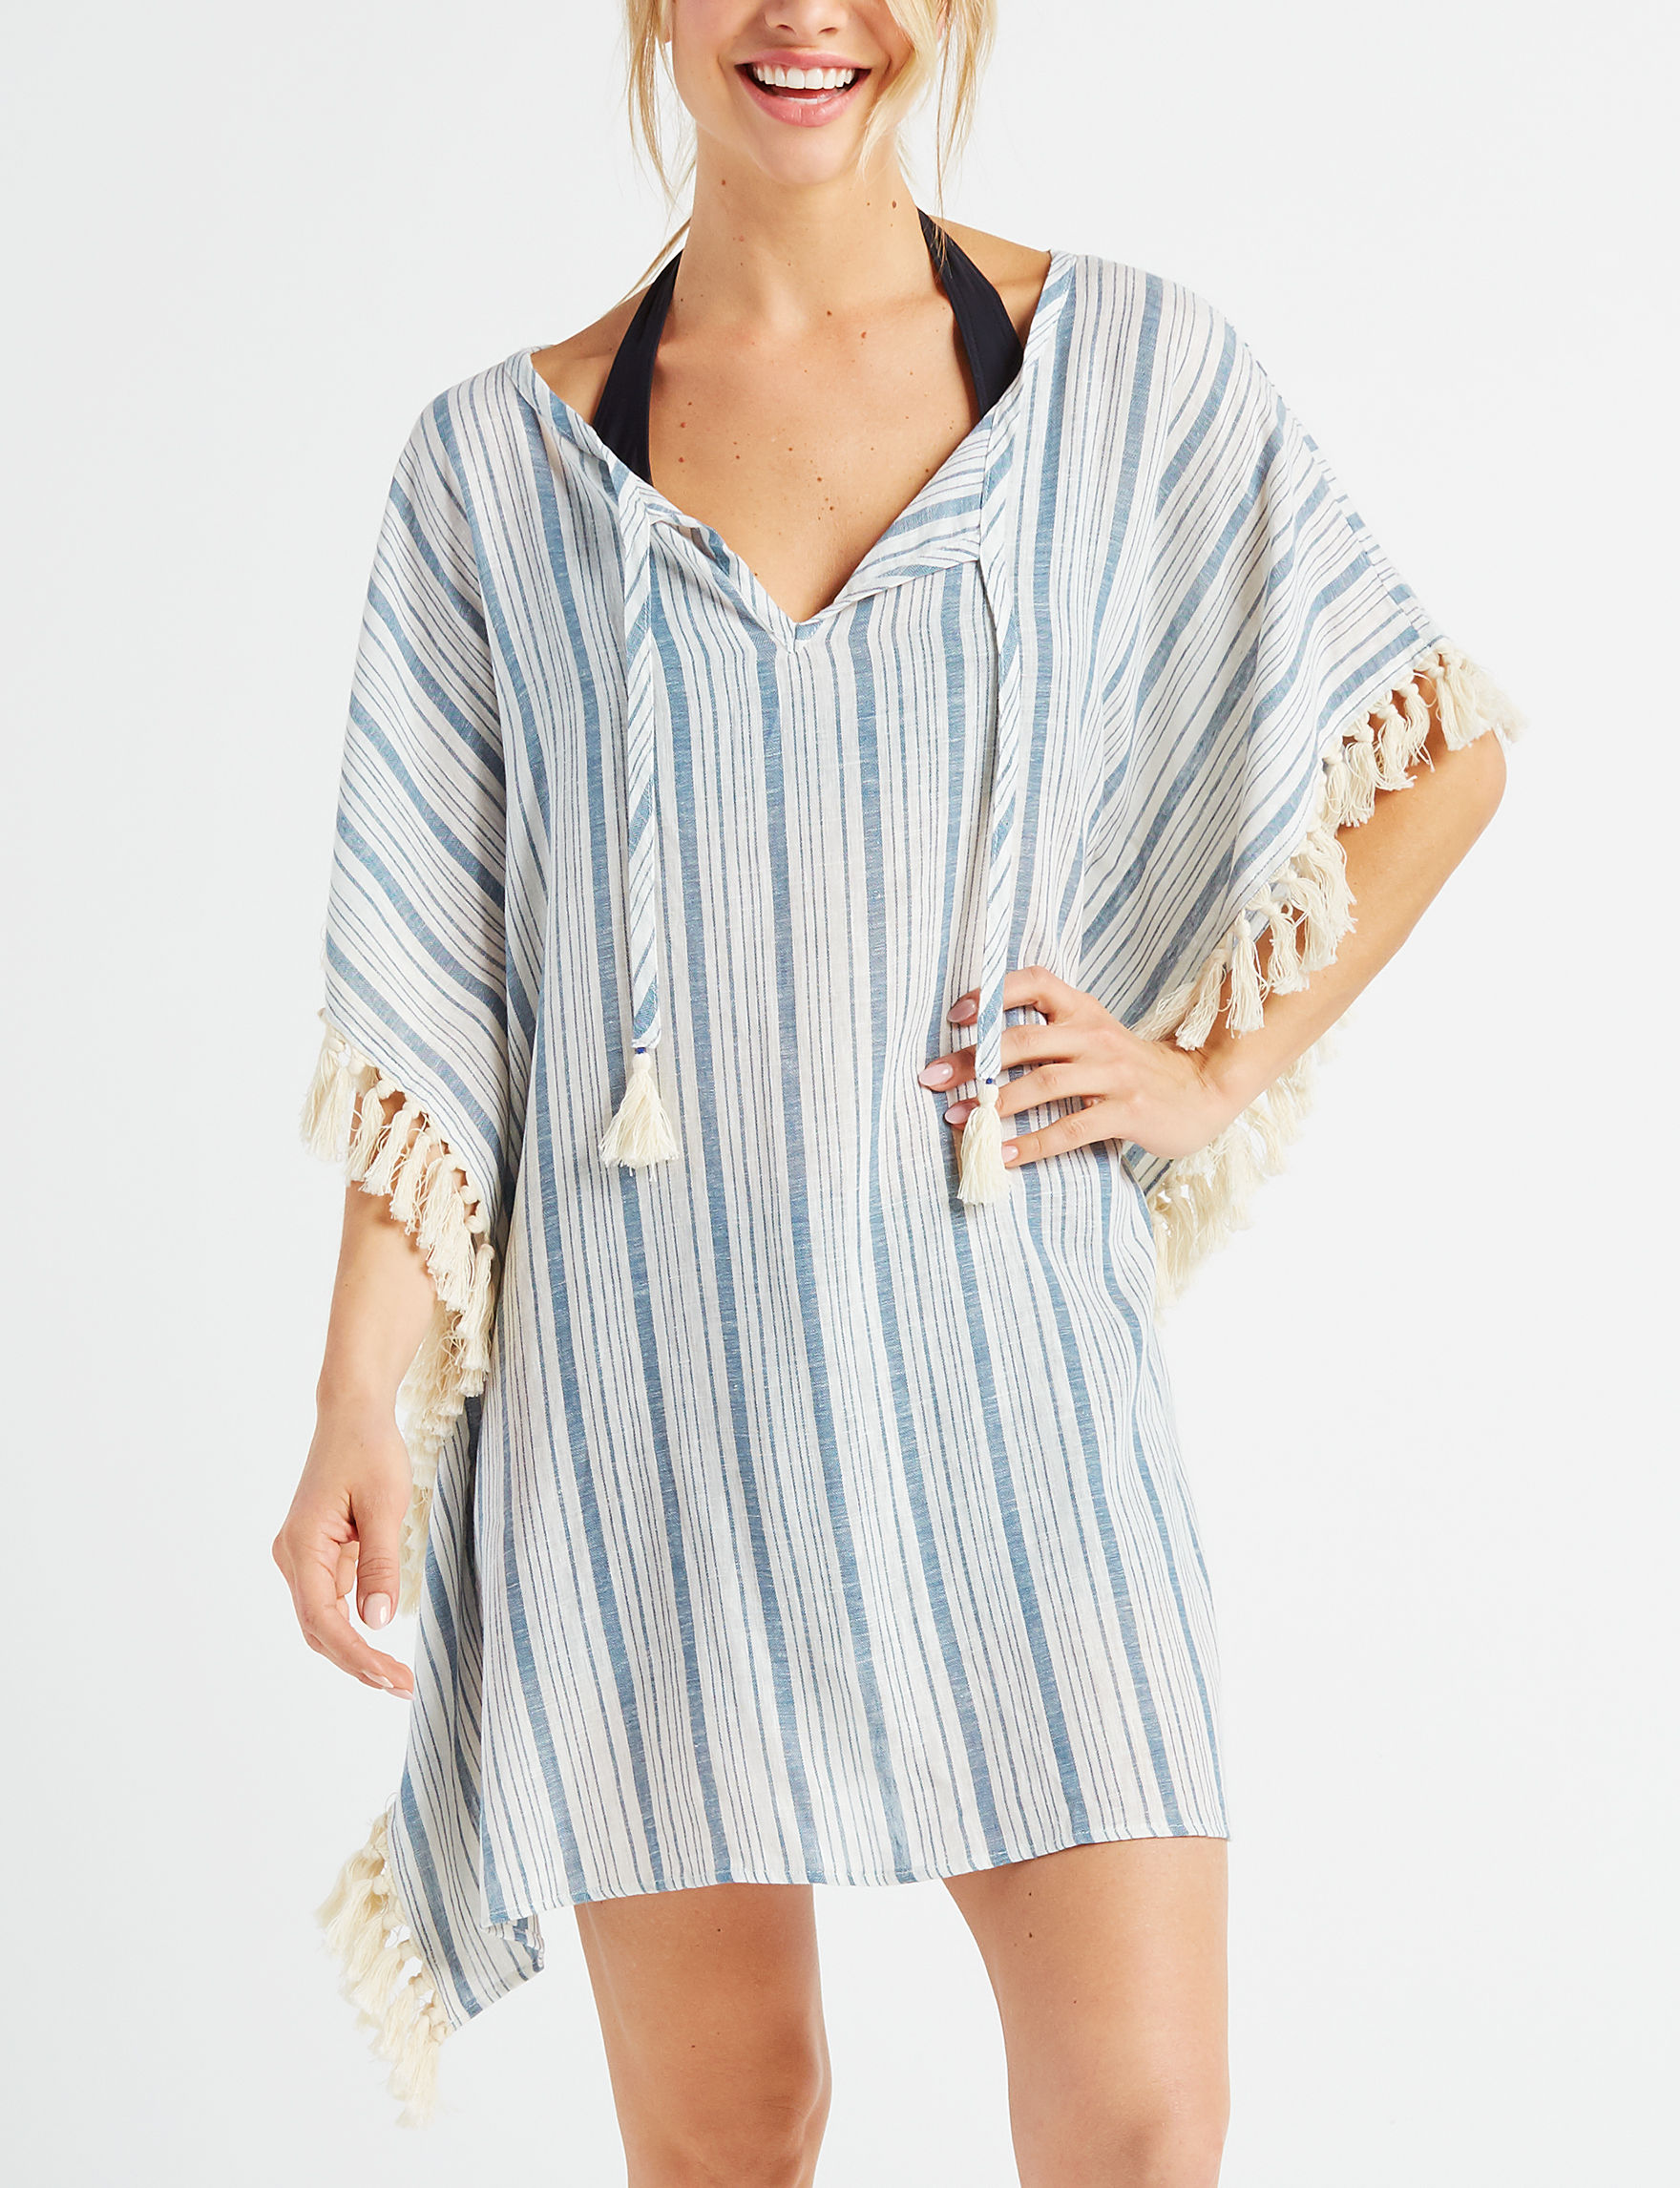 Miken White / Blue Cover-Ups